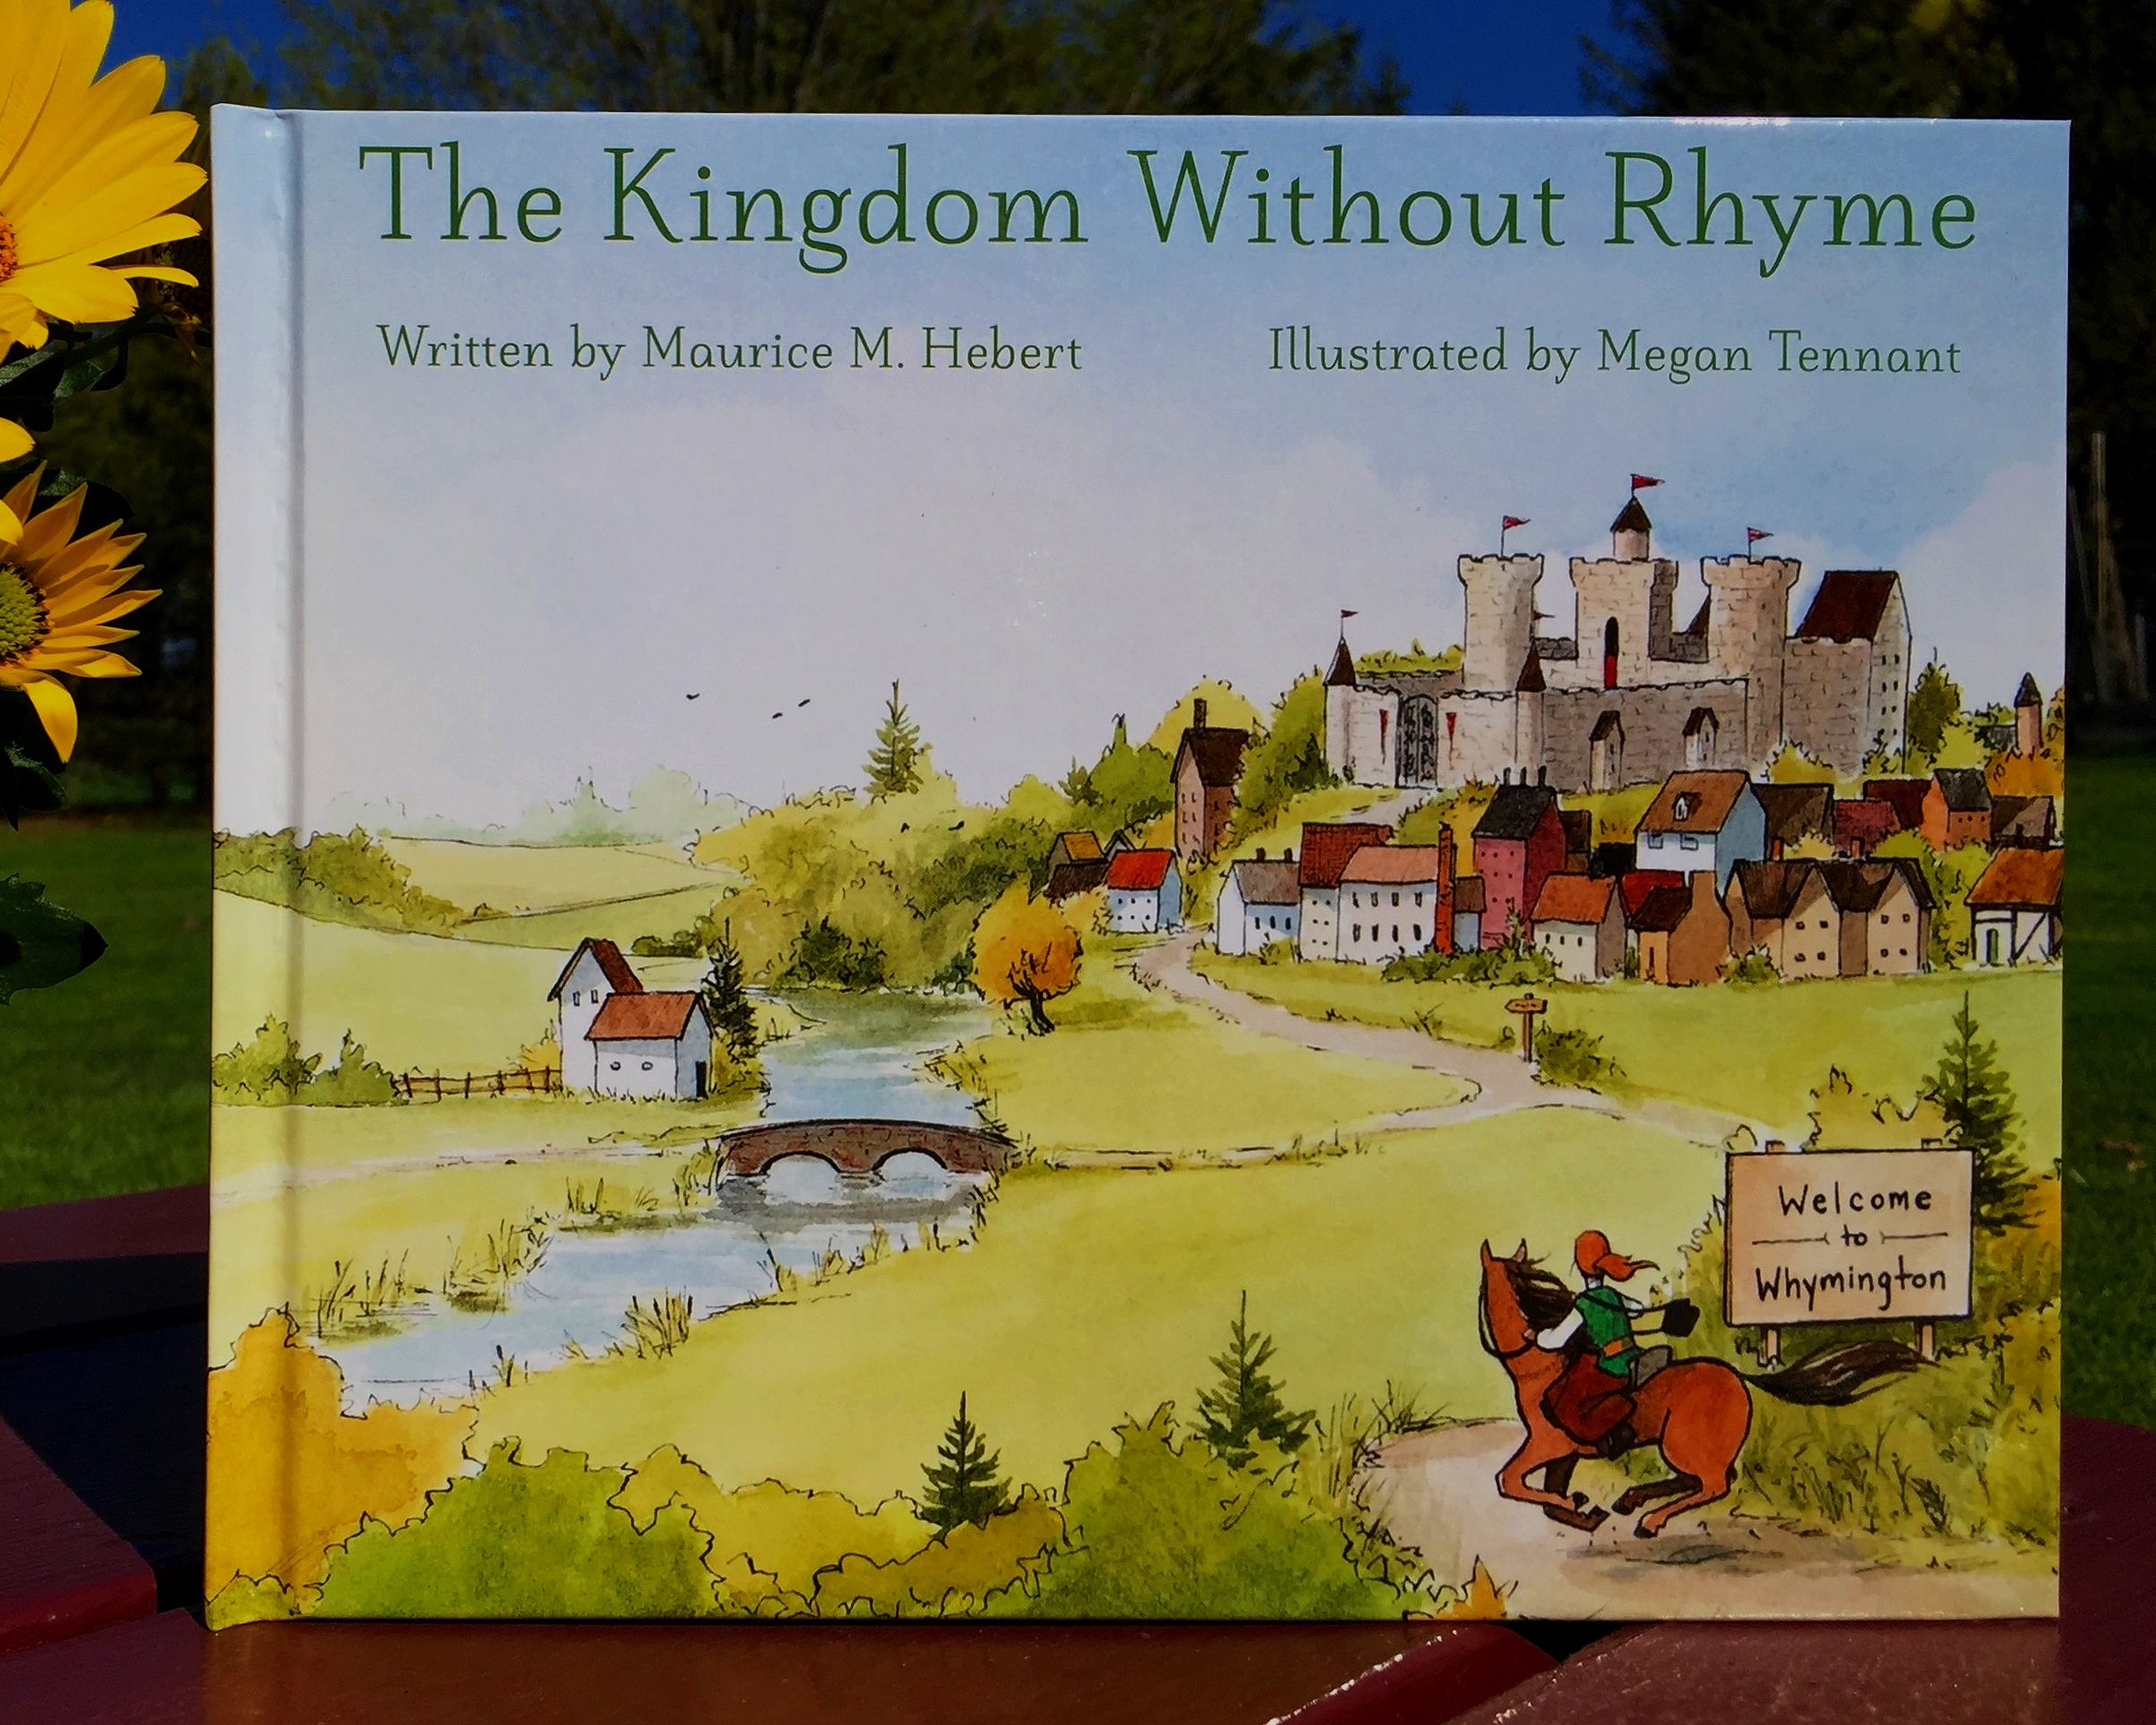 The Kingdom Without Rhyme - Our New Book